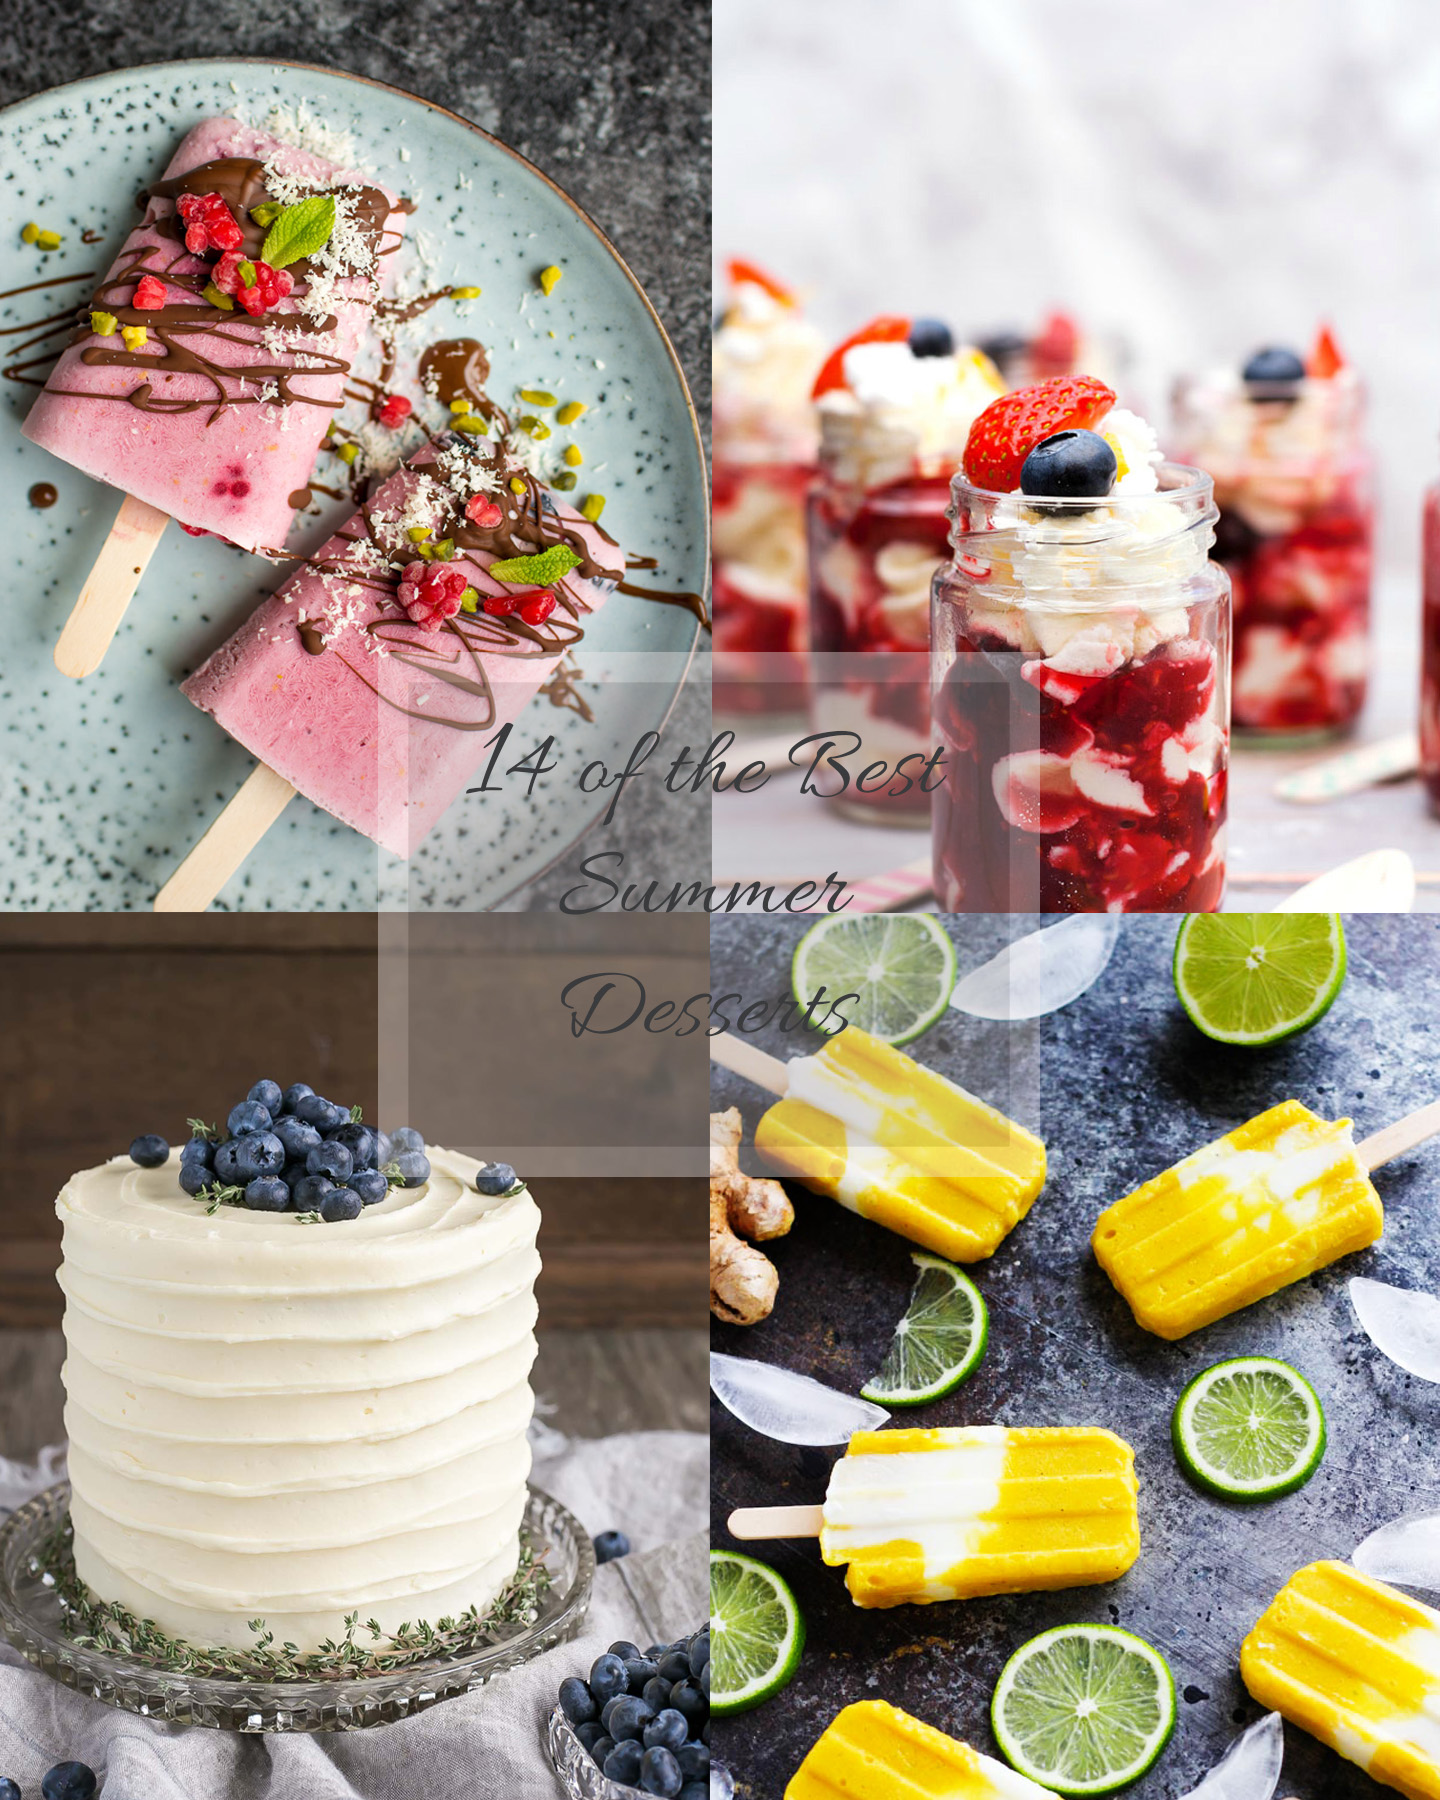 The Best Desserts For A Summer Party: 14 Options Your